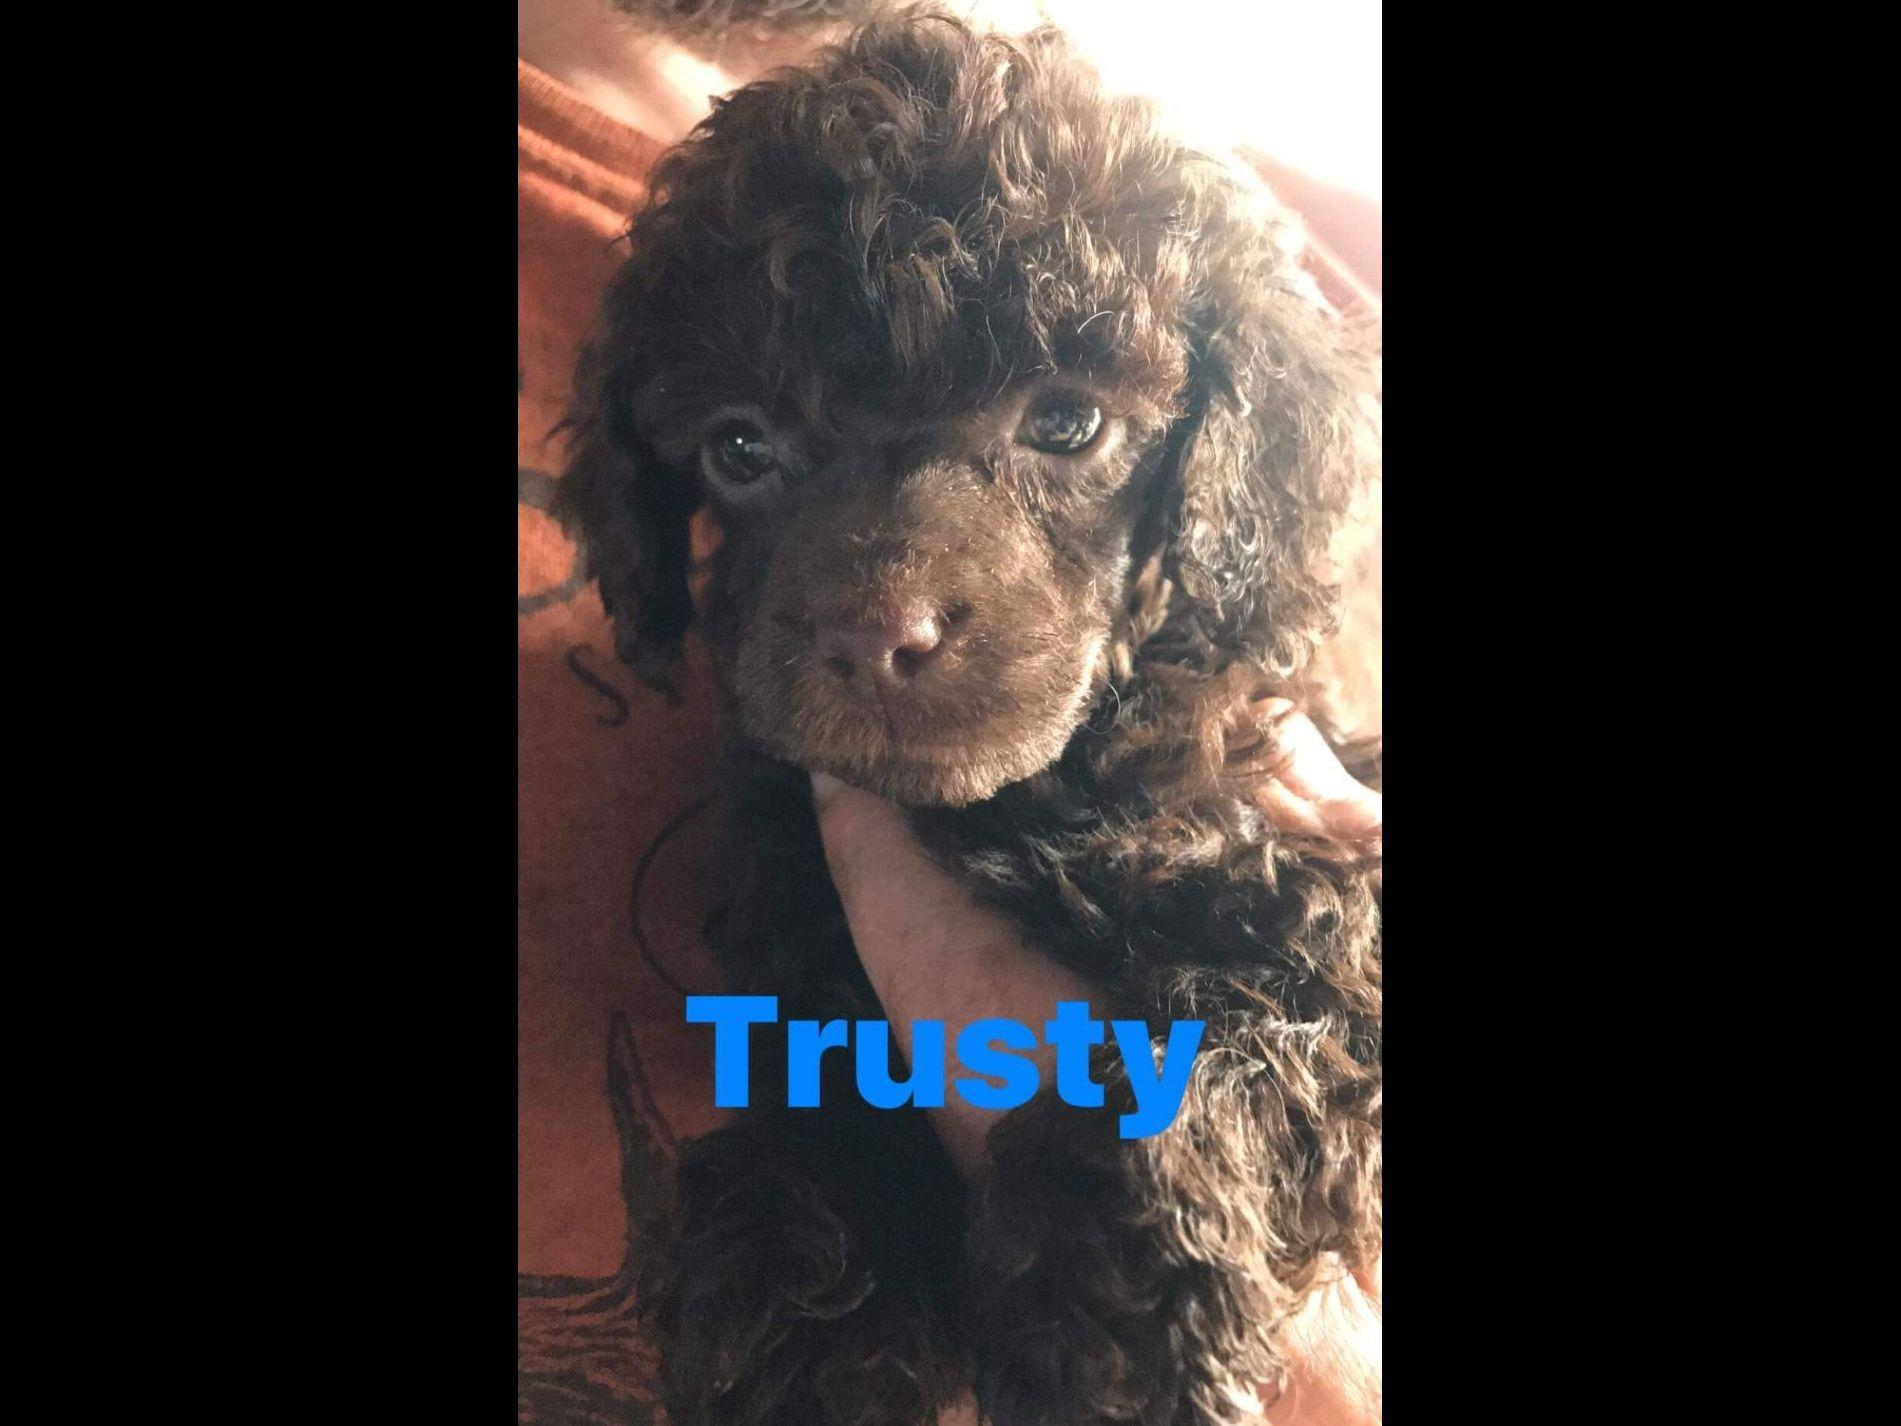 Platinum tea cup poodles for sale dog breeds picture - Trusty 5 Weeks